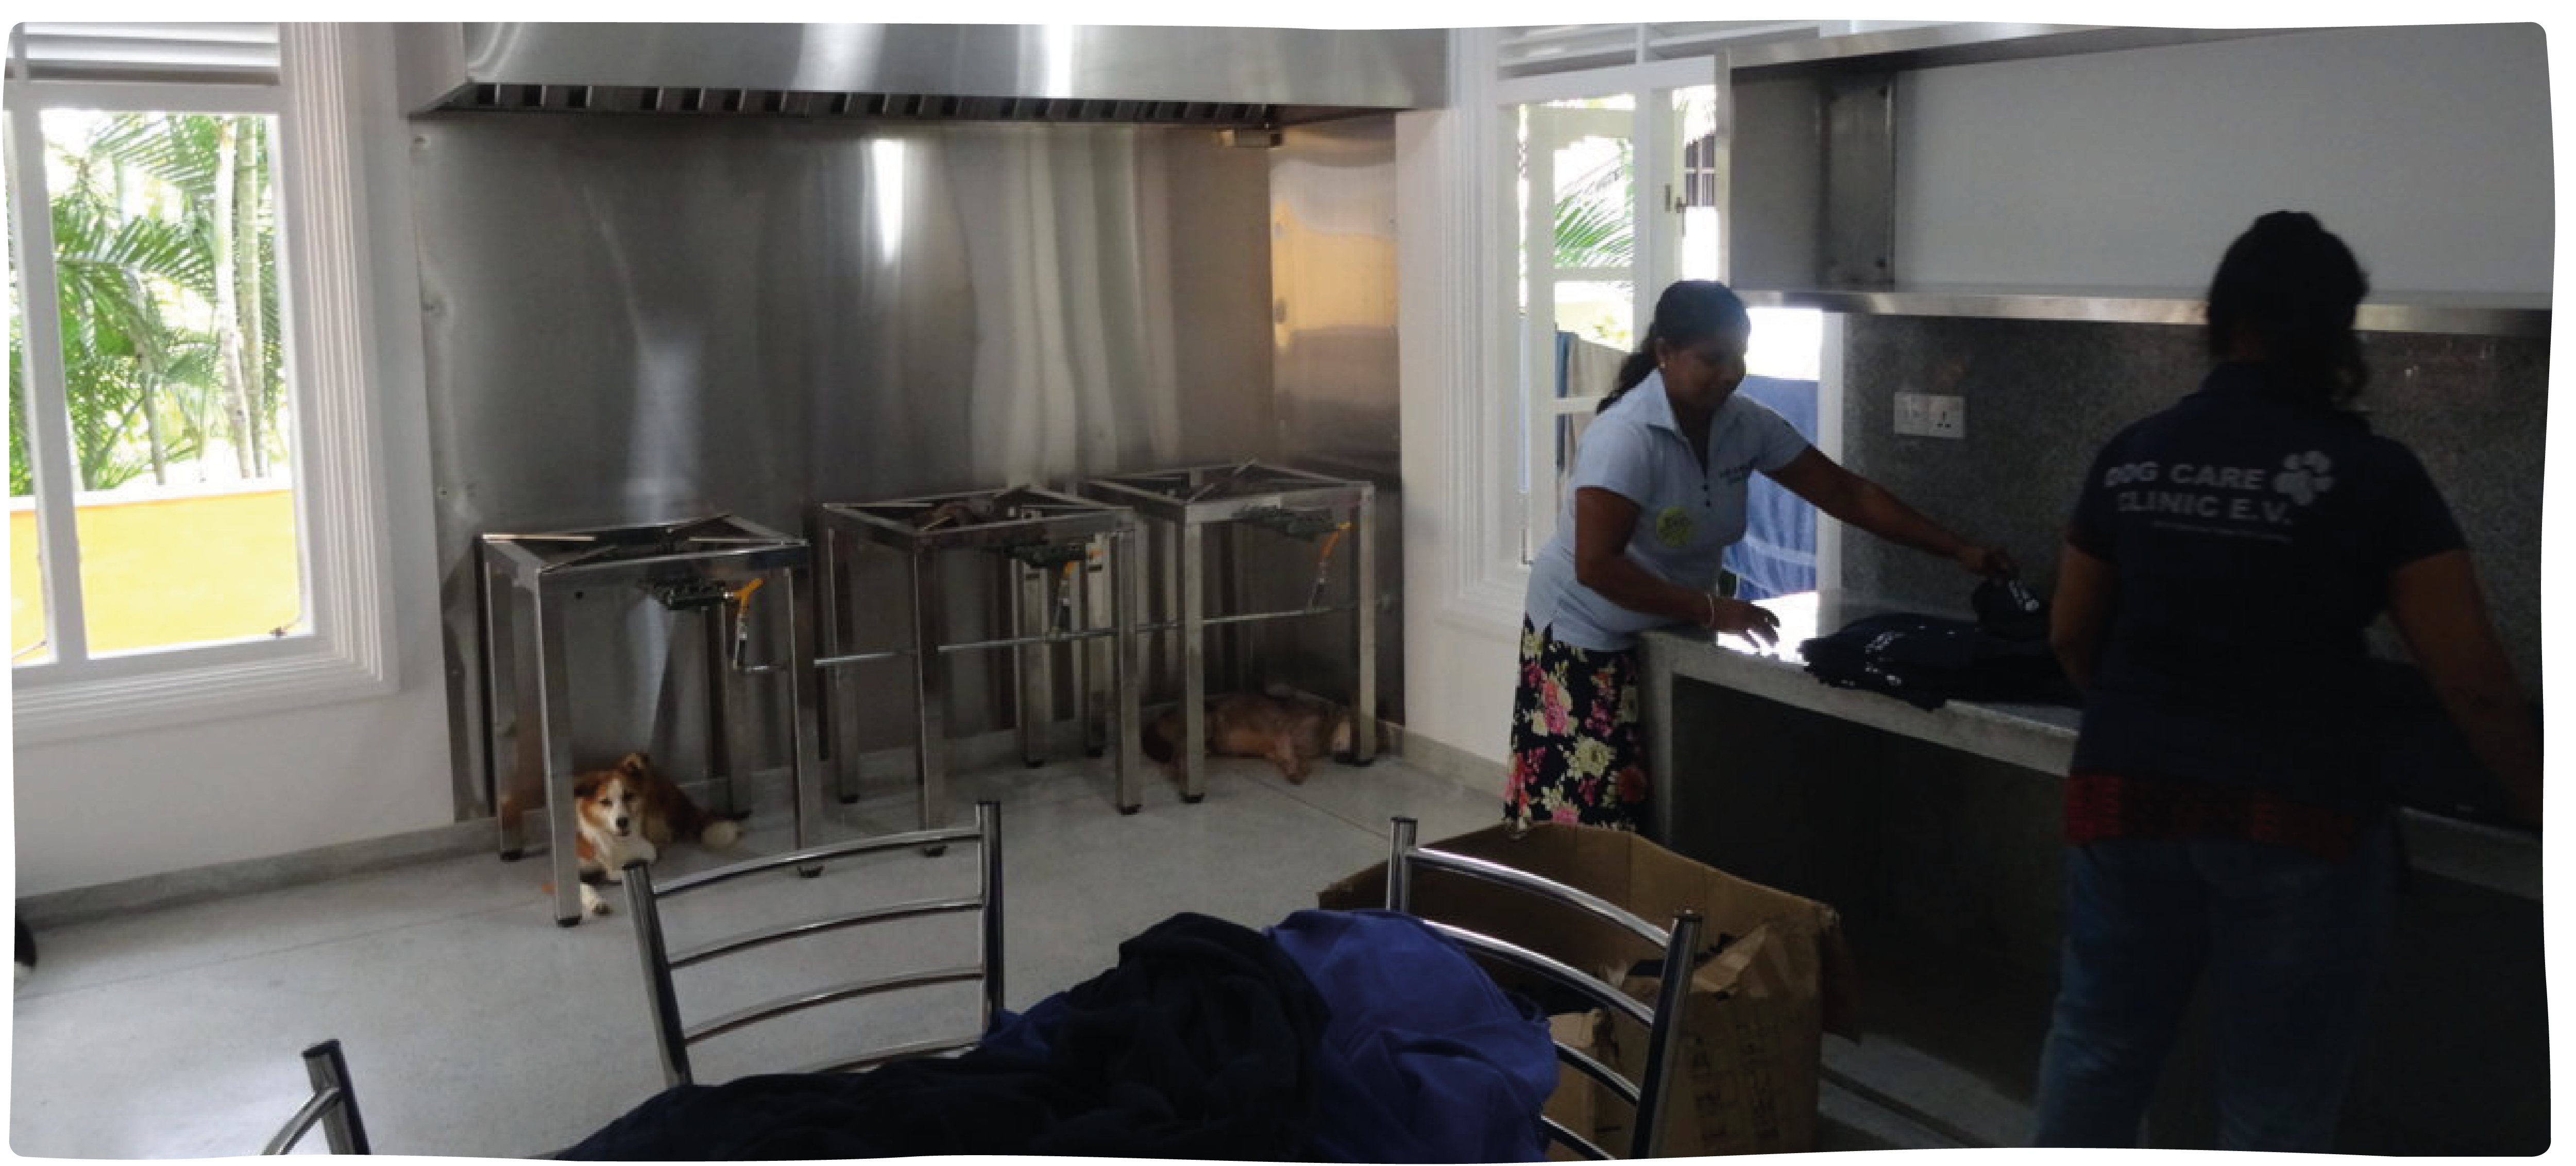 In 2018 we funded the build of a fully equipped kitchen, offering a much safer and more hygienic environment to prepare meals.